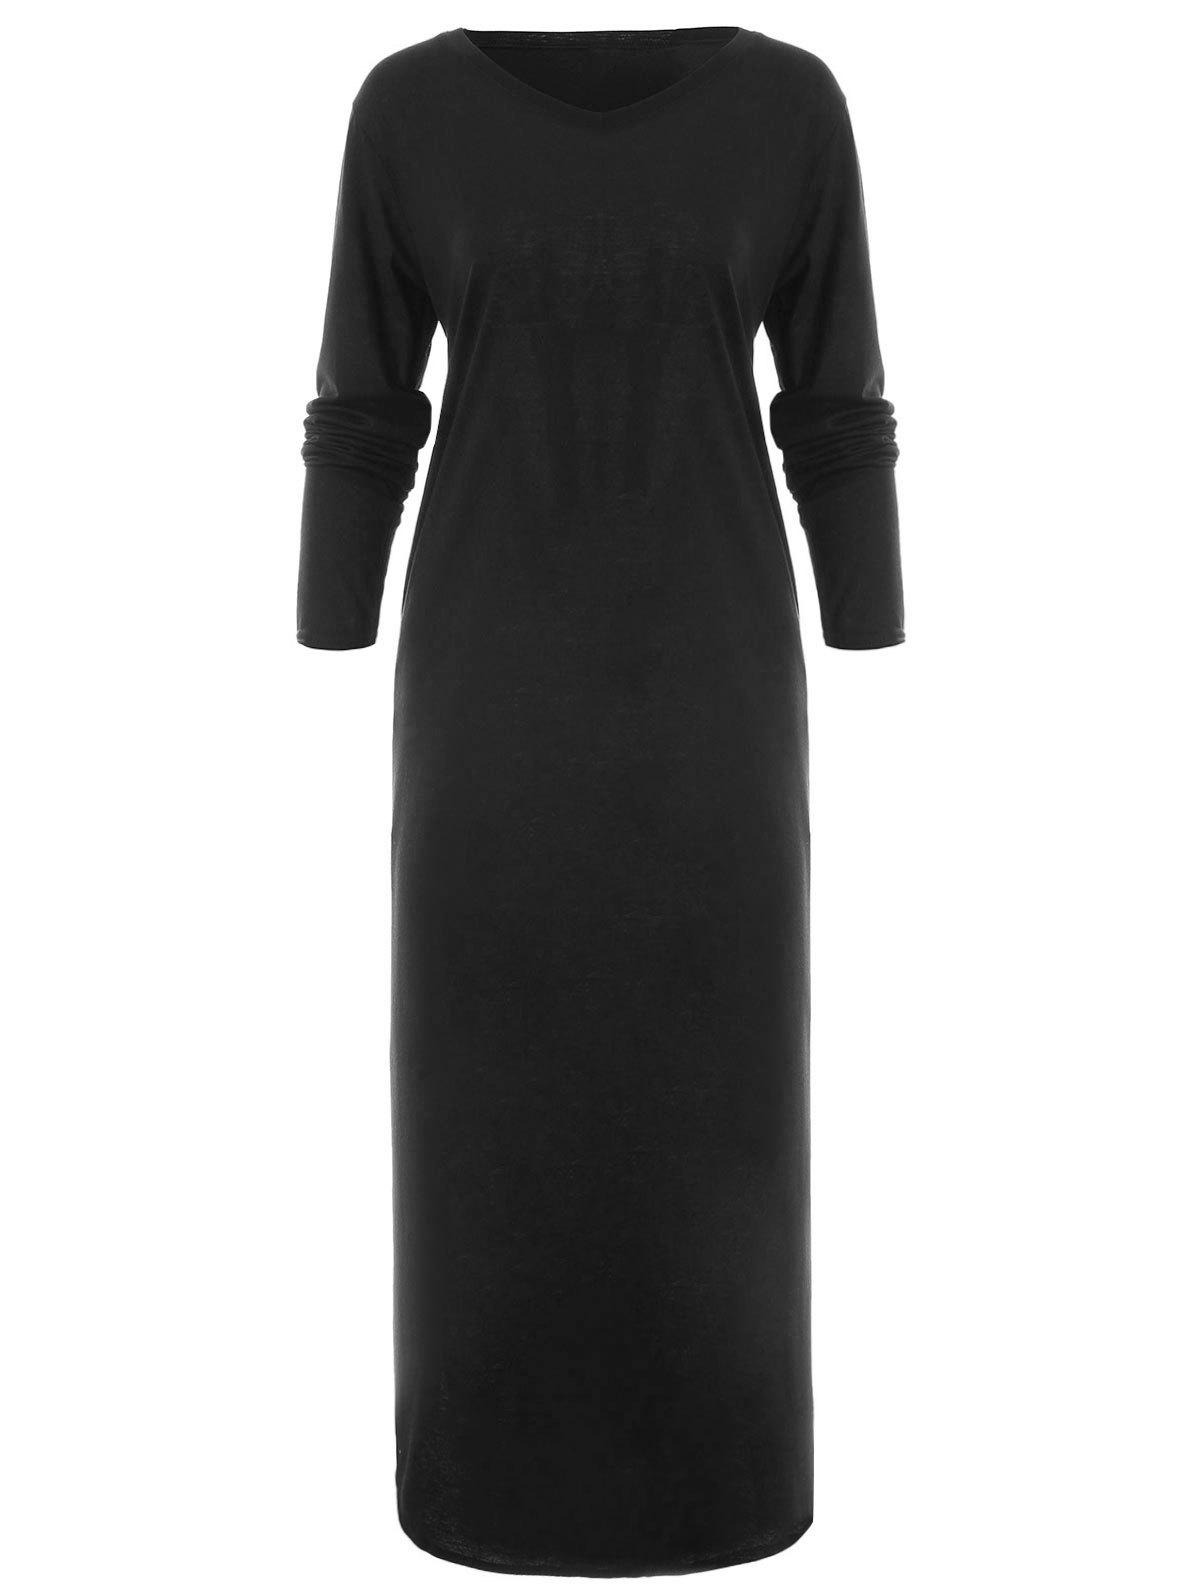 Hot Full Sleeve Longline Dress